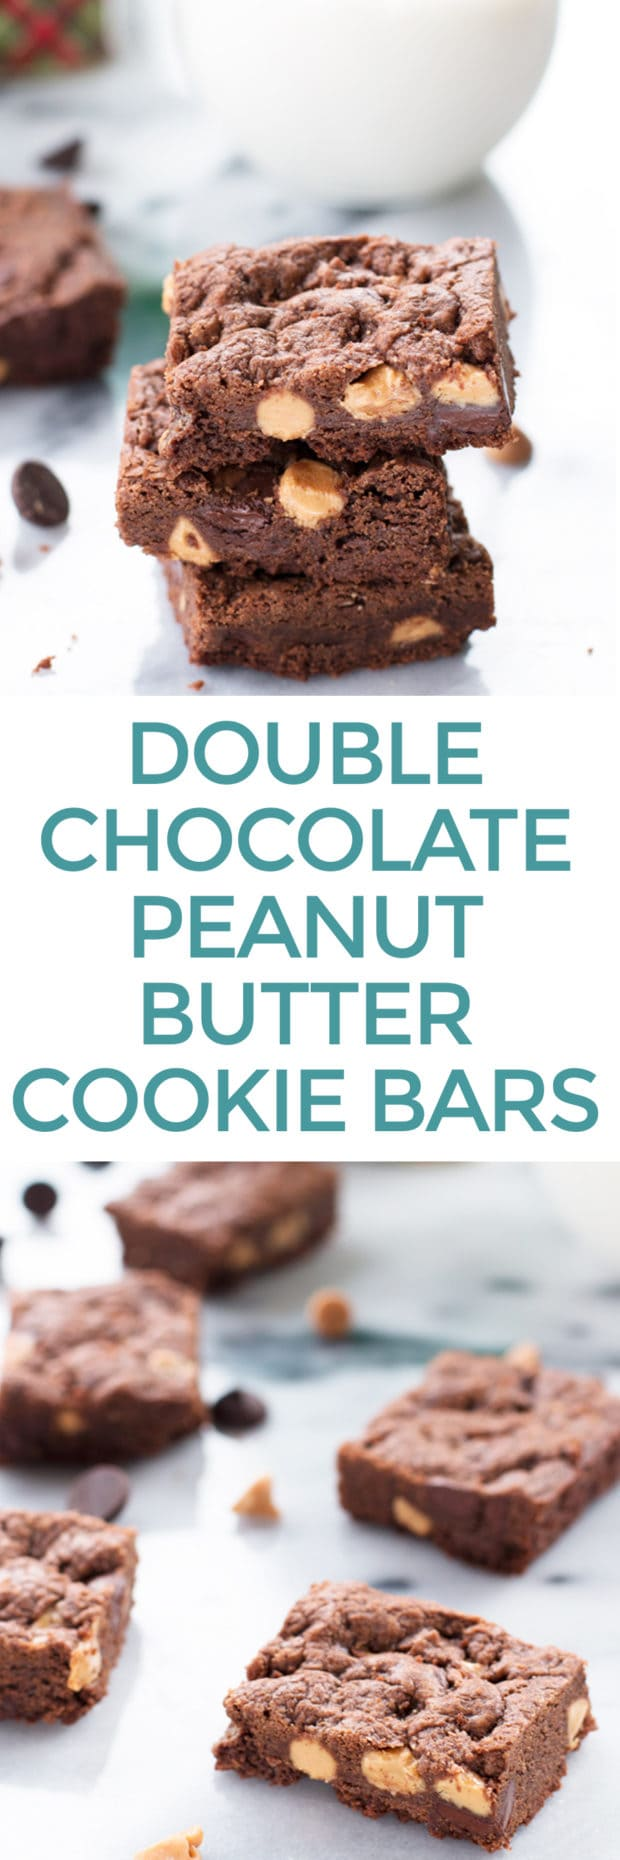 Chewy Double Chocolate Peanut Butter Cookie Bars | cakenknife.com